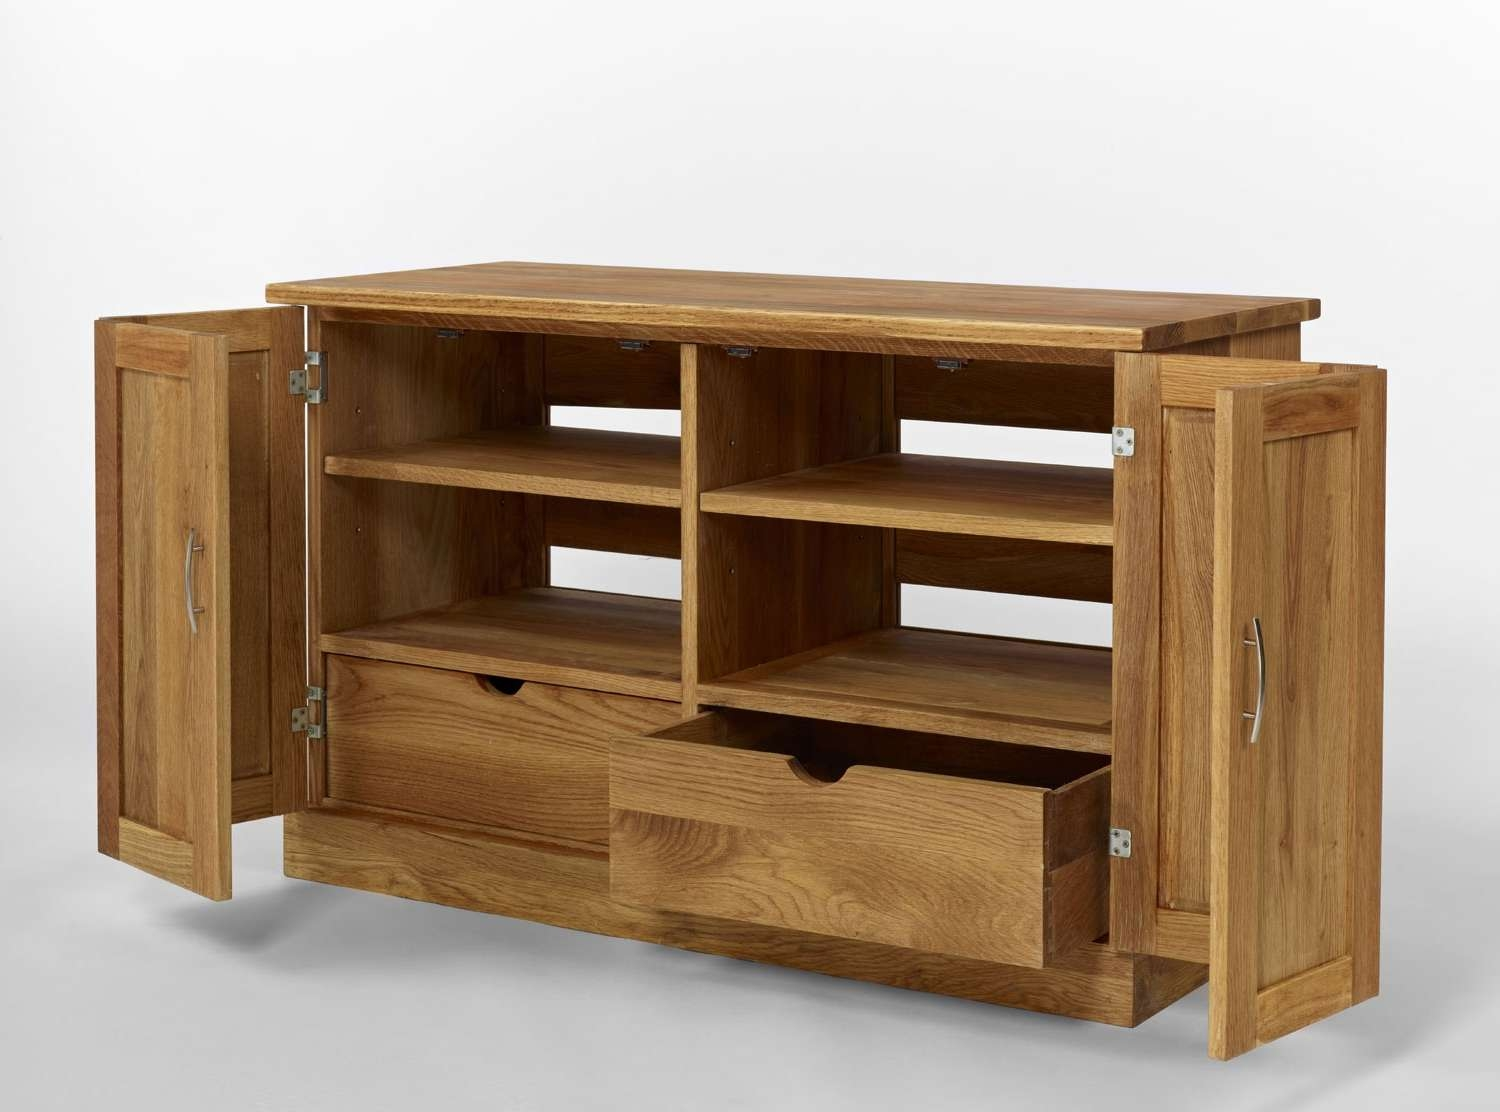 Modern Tv Cabinets Remarkable 18 Brooklyn Contemporary Oak Intended For Widescreen Tv Cabinets (View 13 of 20)